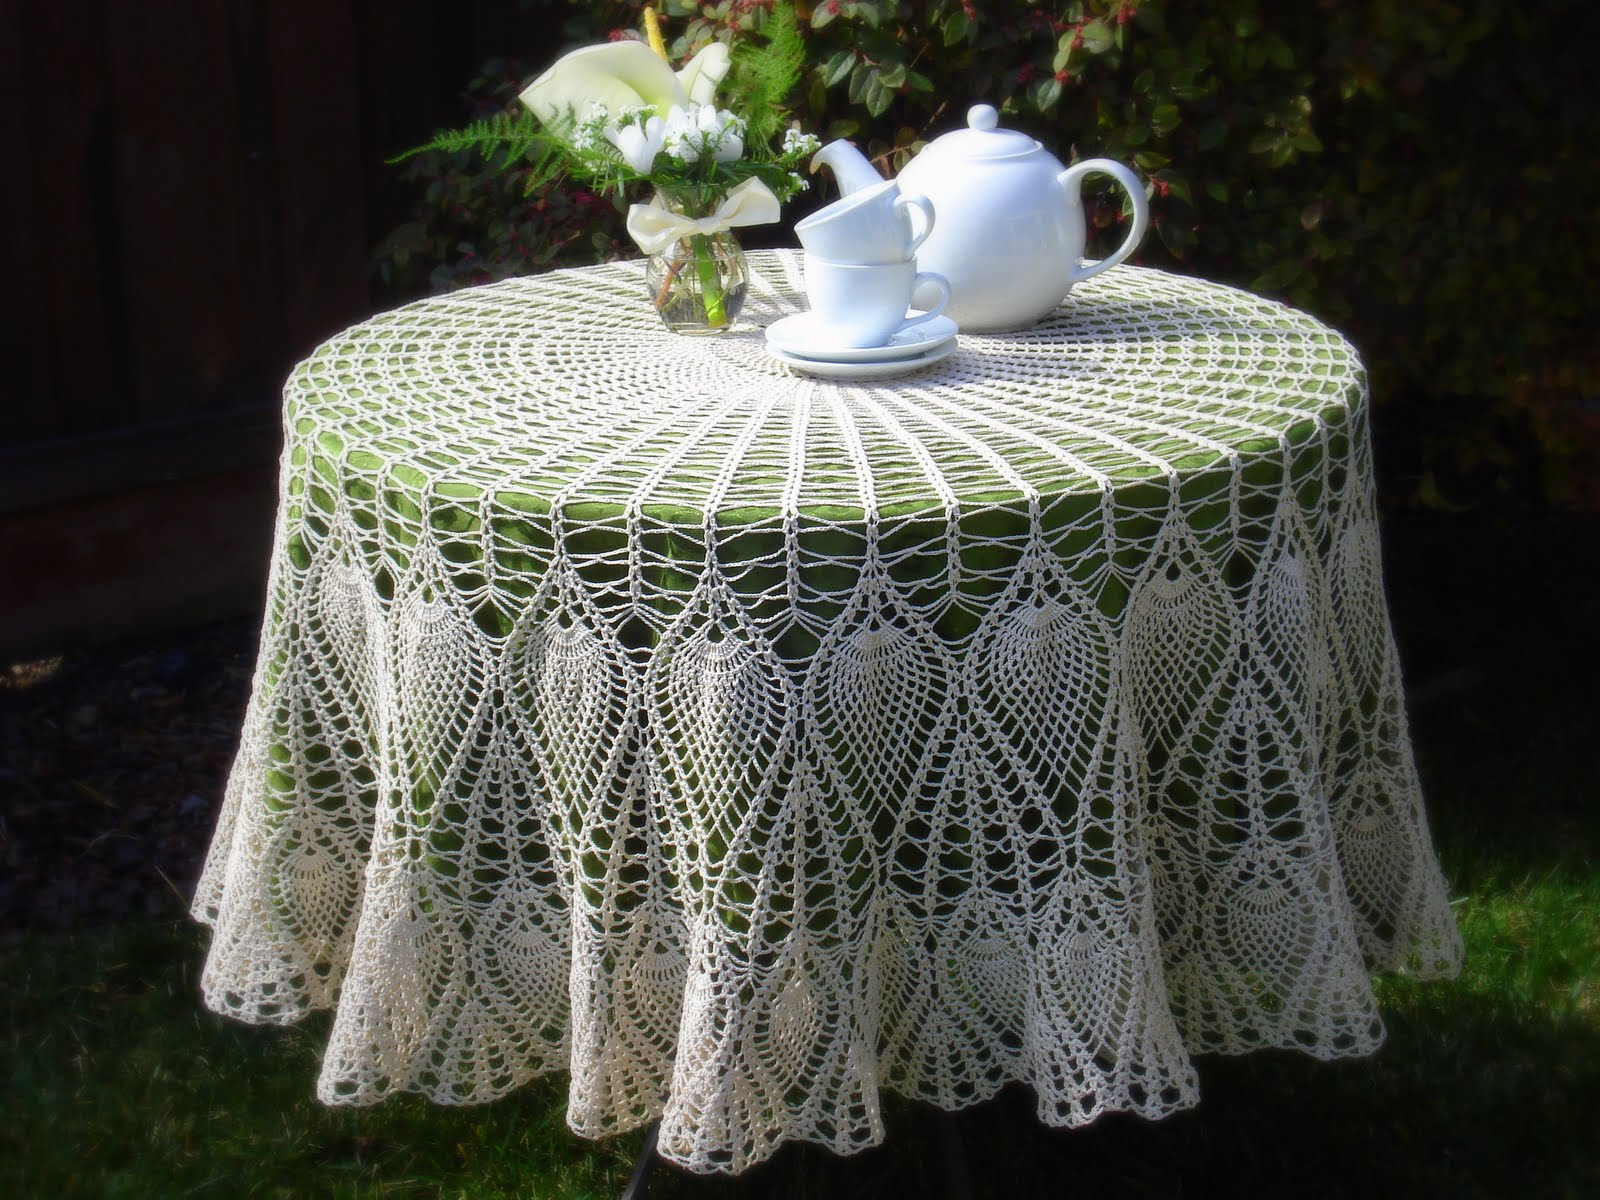 Bedspreads and Tablecloths in crochet - 393 patterns